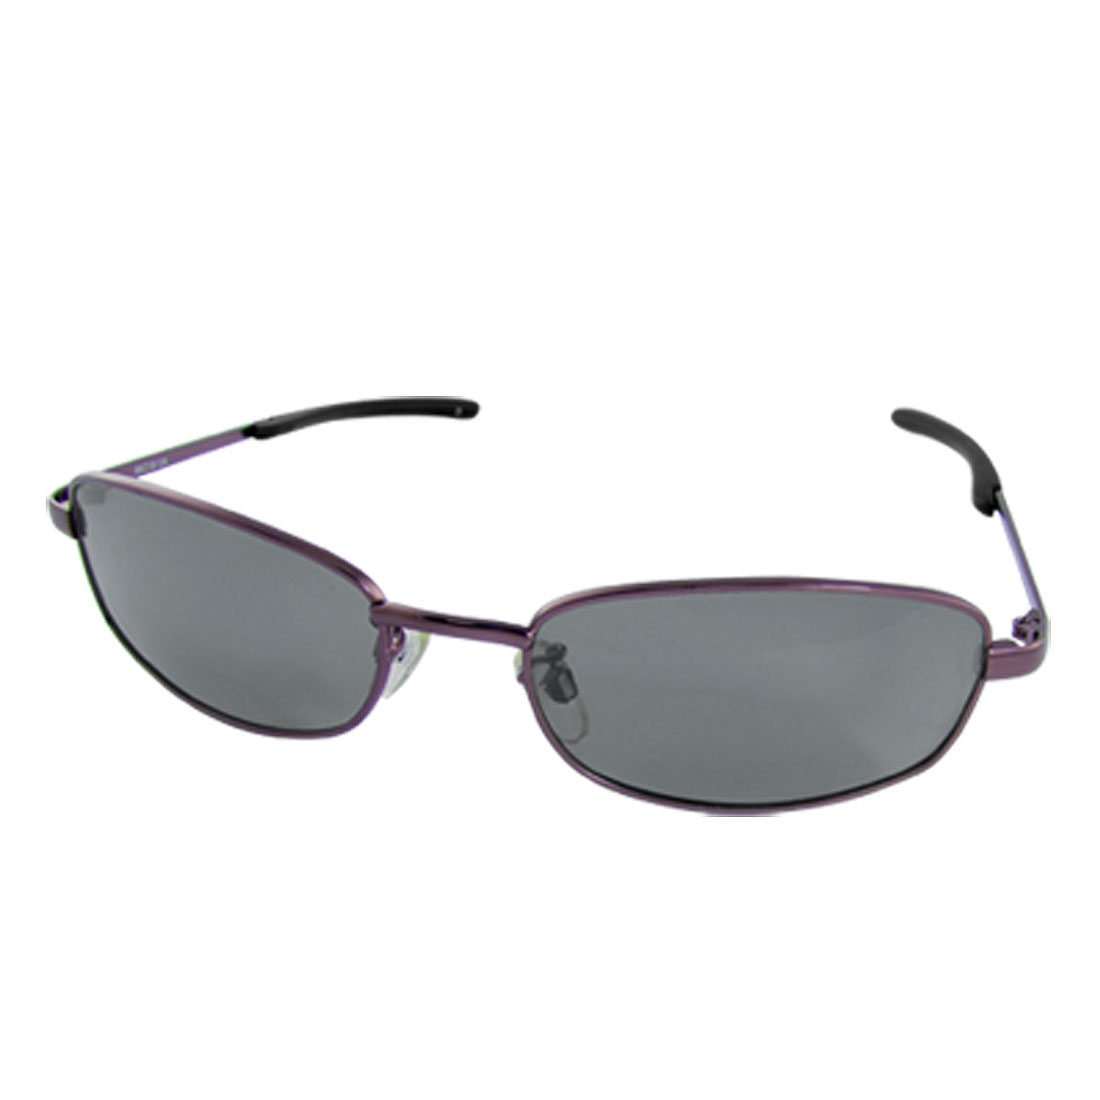 Dark Purple Slim Metal Frame Dark Polarized Sunglasses